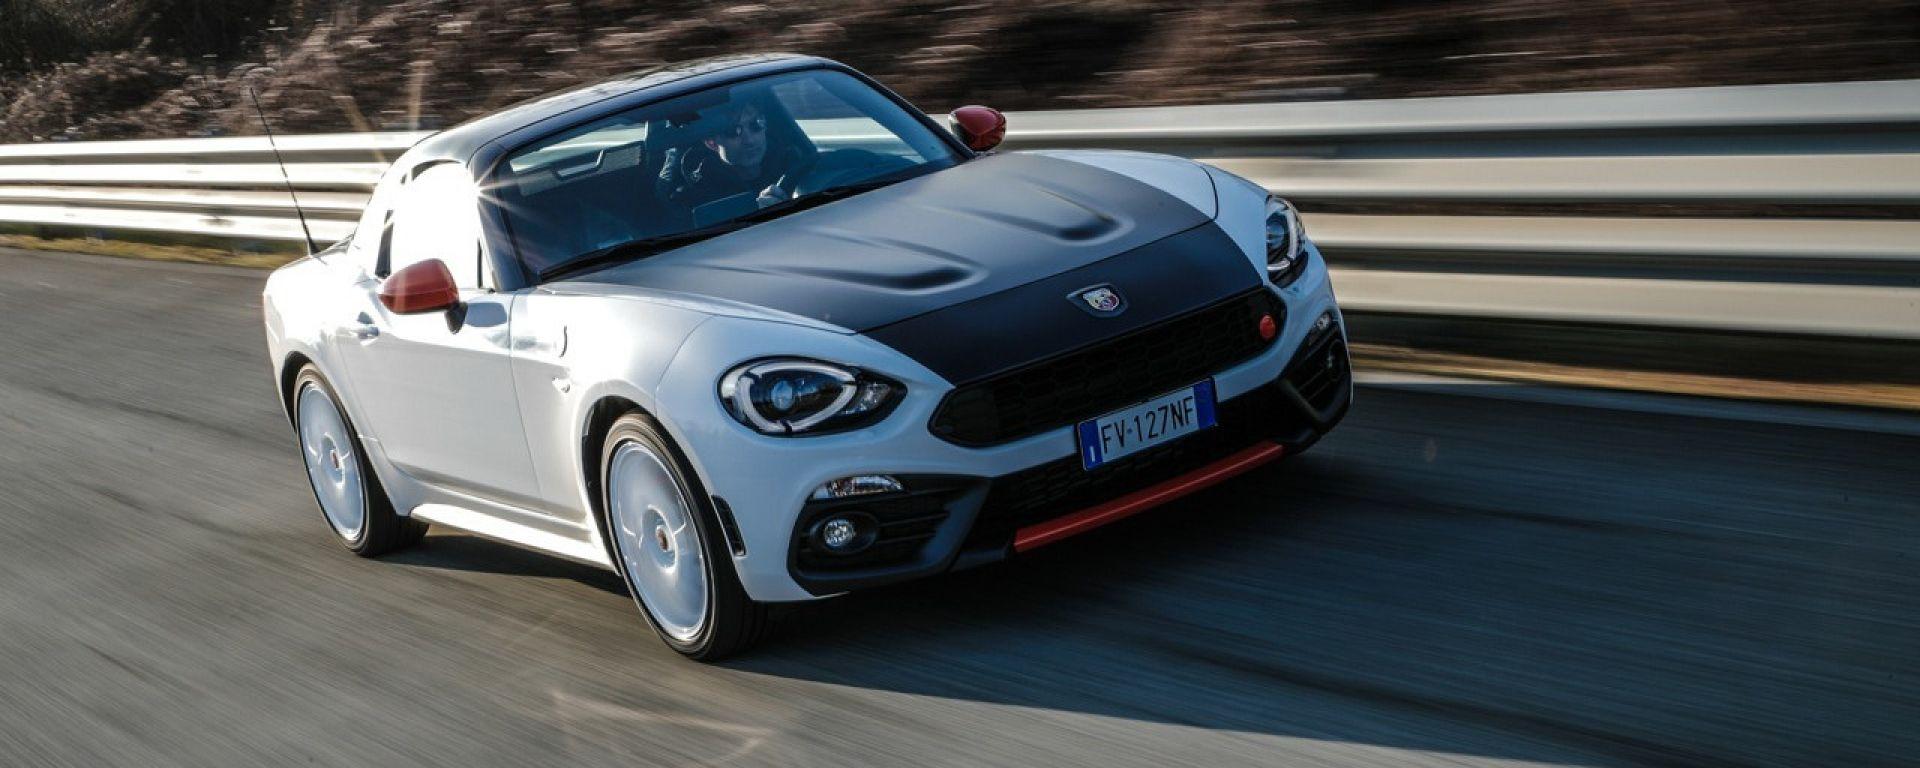 Abarth 124 Rally Tribute al Salone di Ginevra 2019